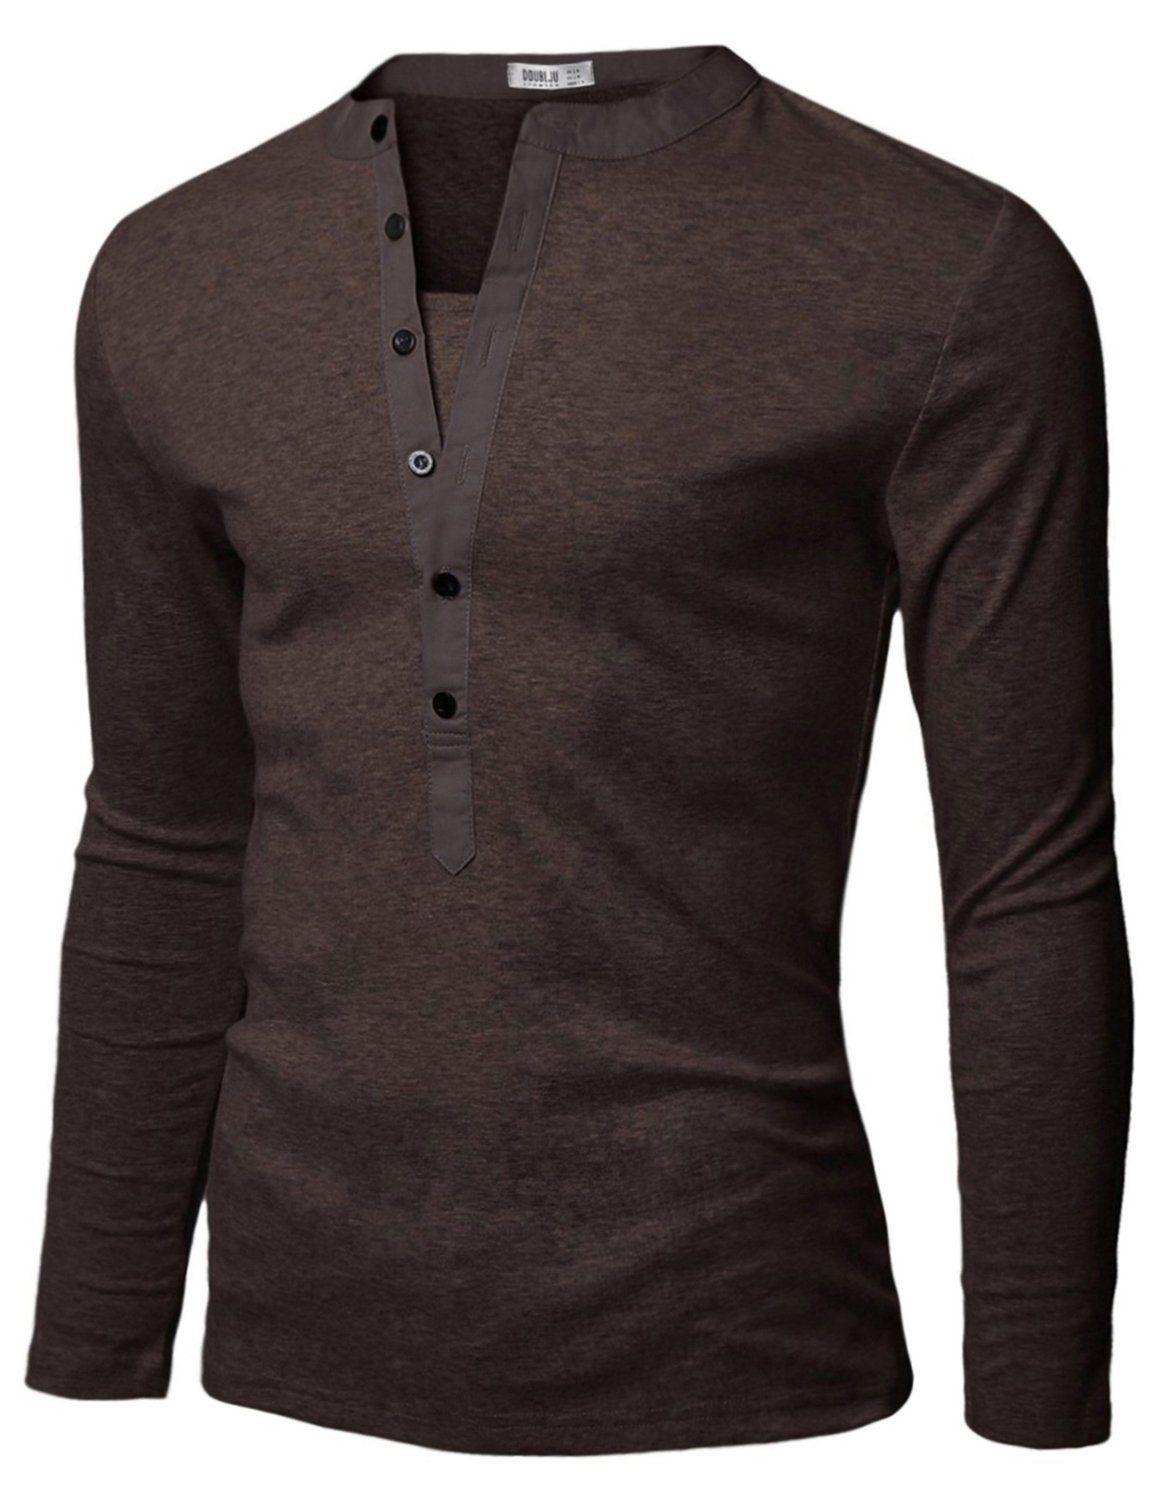 Doublju Mens Basic Slim Fit Long Sleeve Henley Shirts at Amazon Men's  Clothing store: